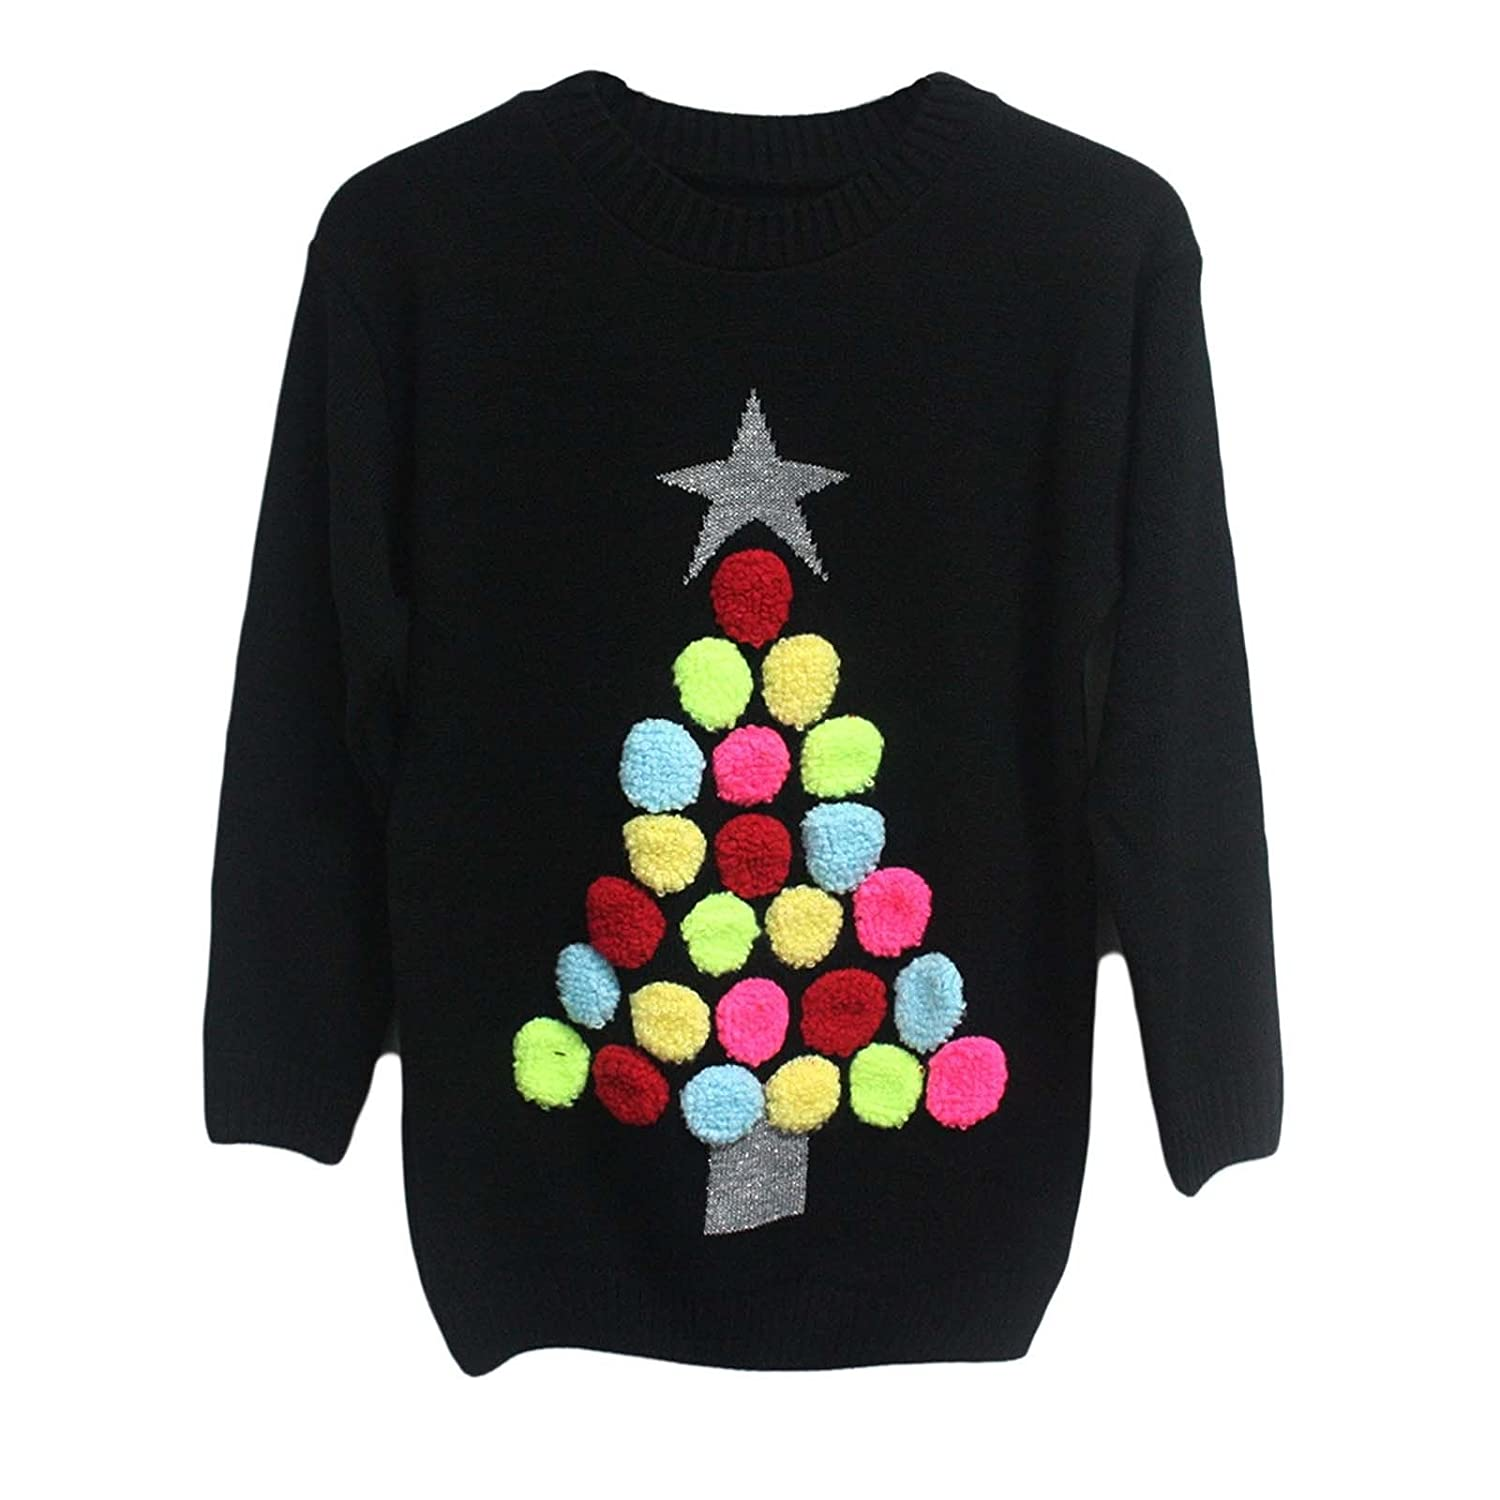 Clothing Trader Ladies Womens Knitted Pom Pom Christmas Tree Novelty Xmas Jumper 3453-m